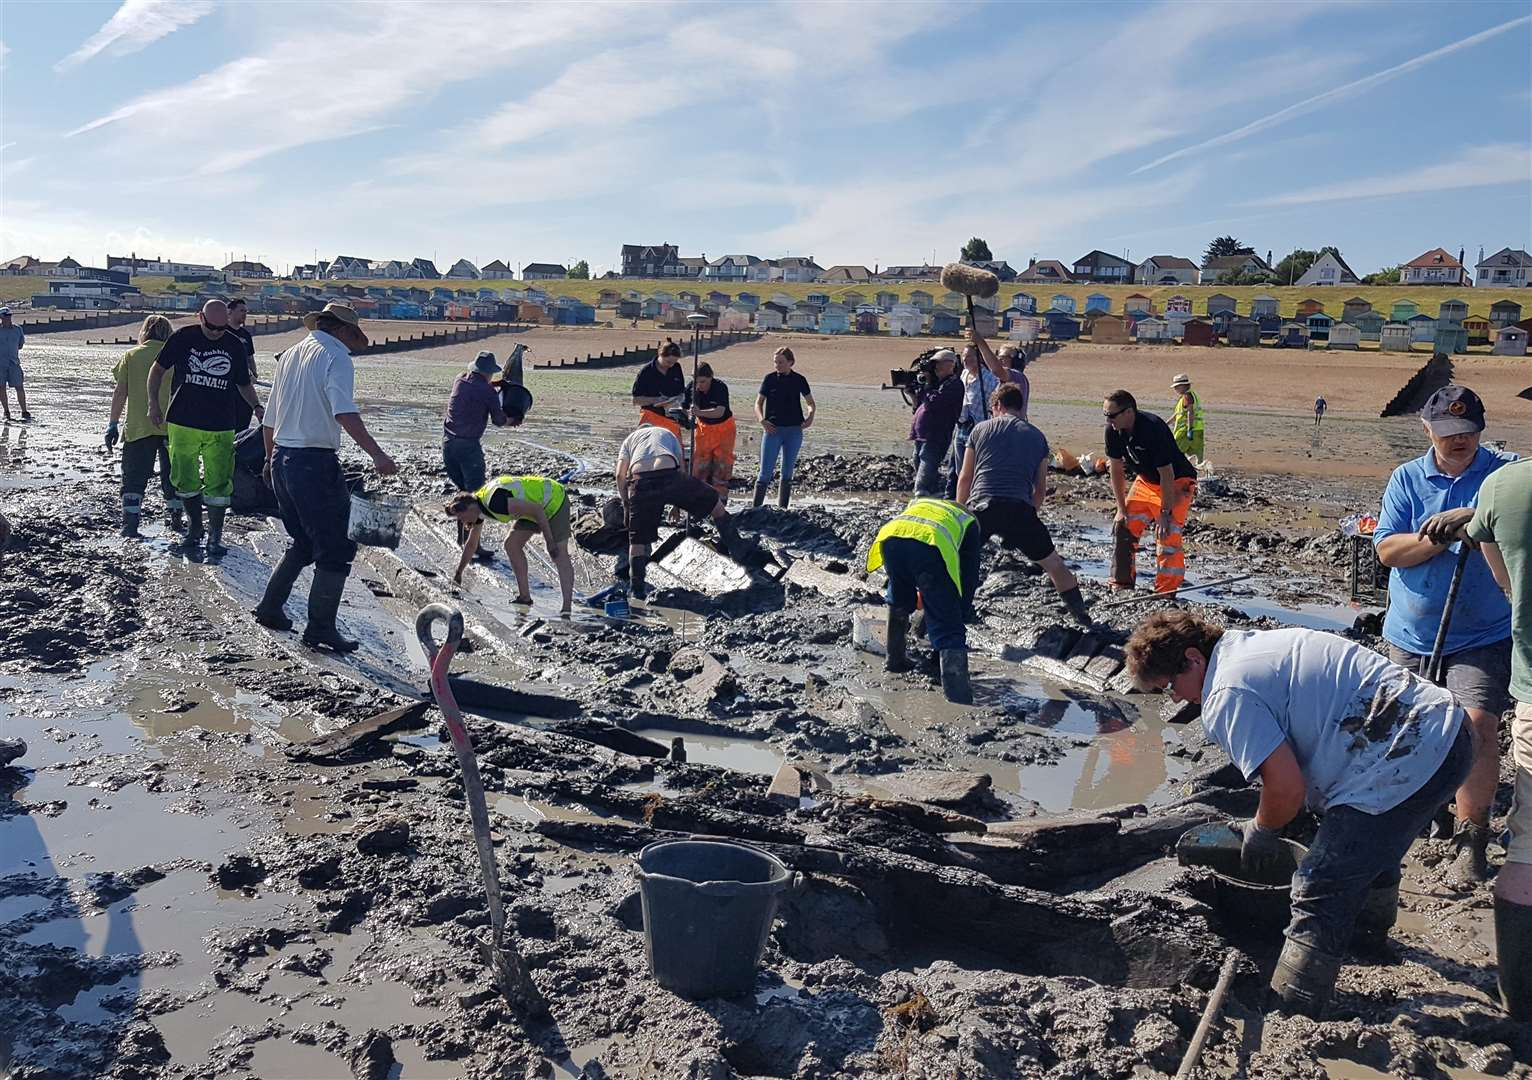 A shipwreck excavation taking place in Tankerton